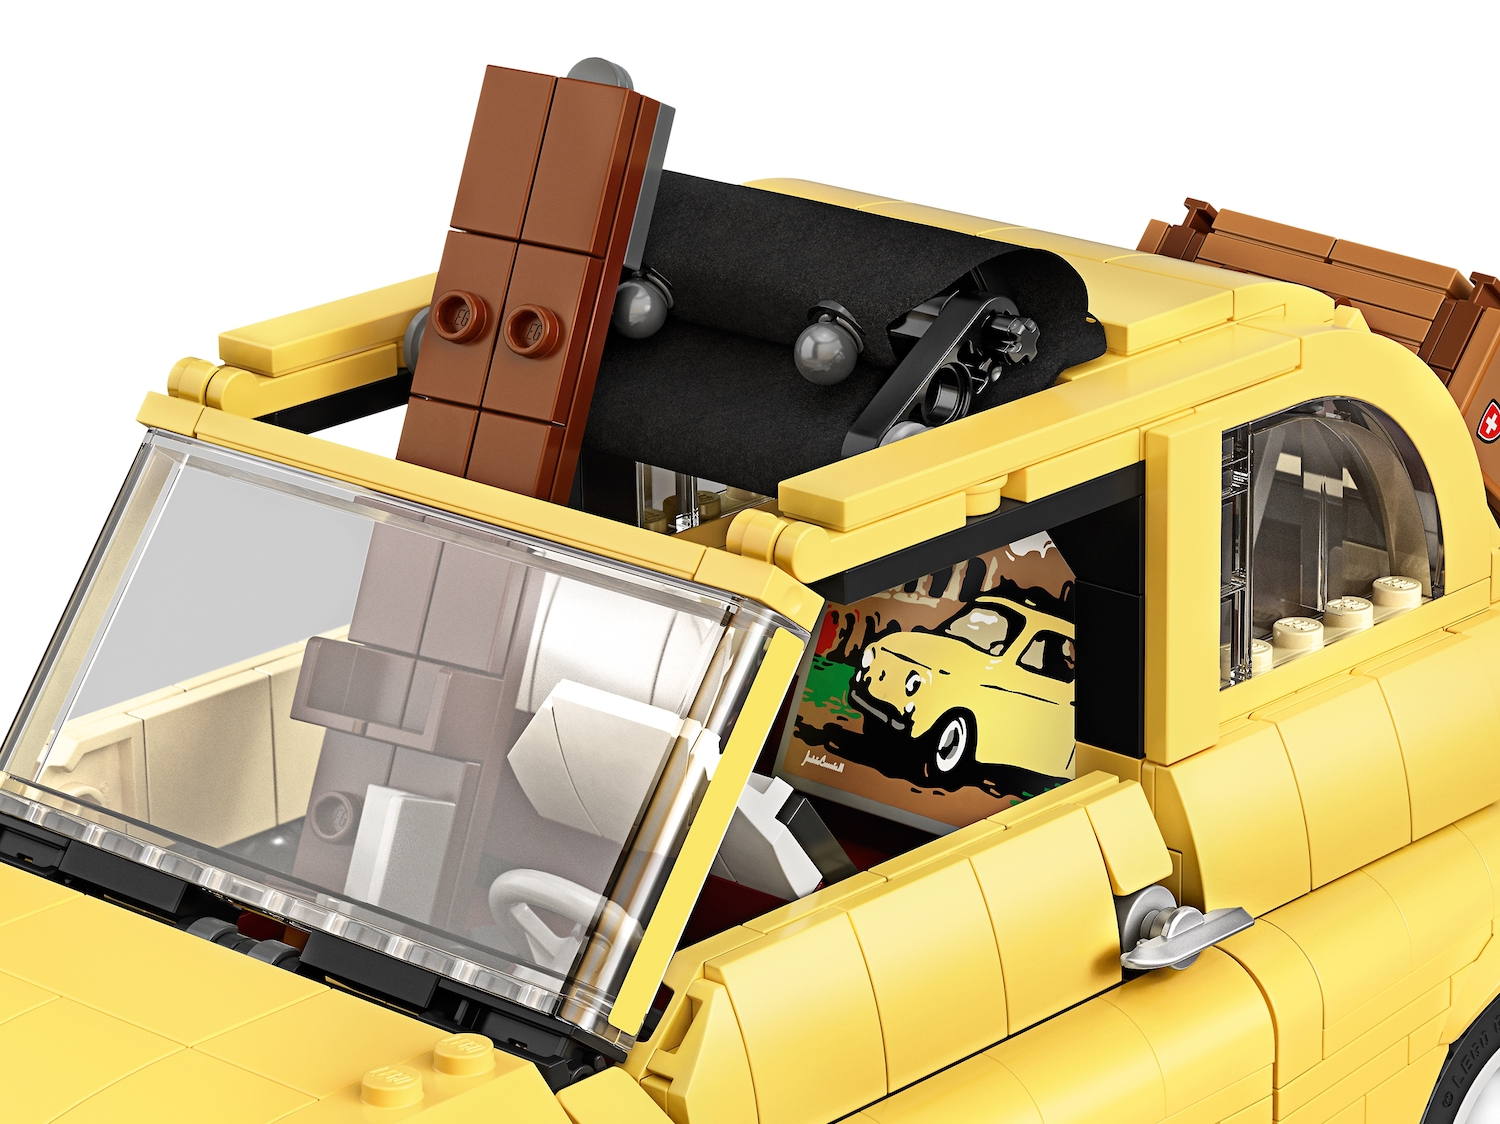 lego fiat 500 toy car roof detail